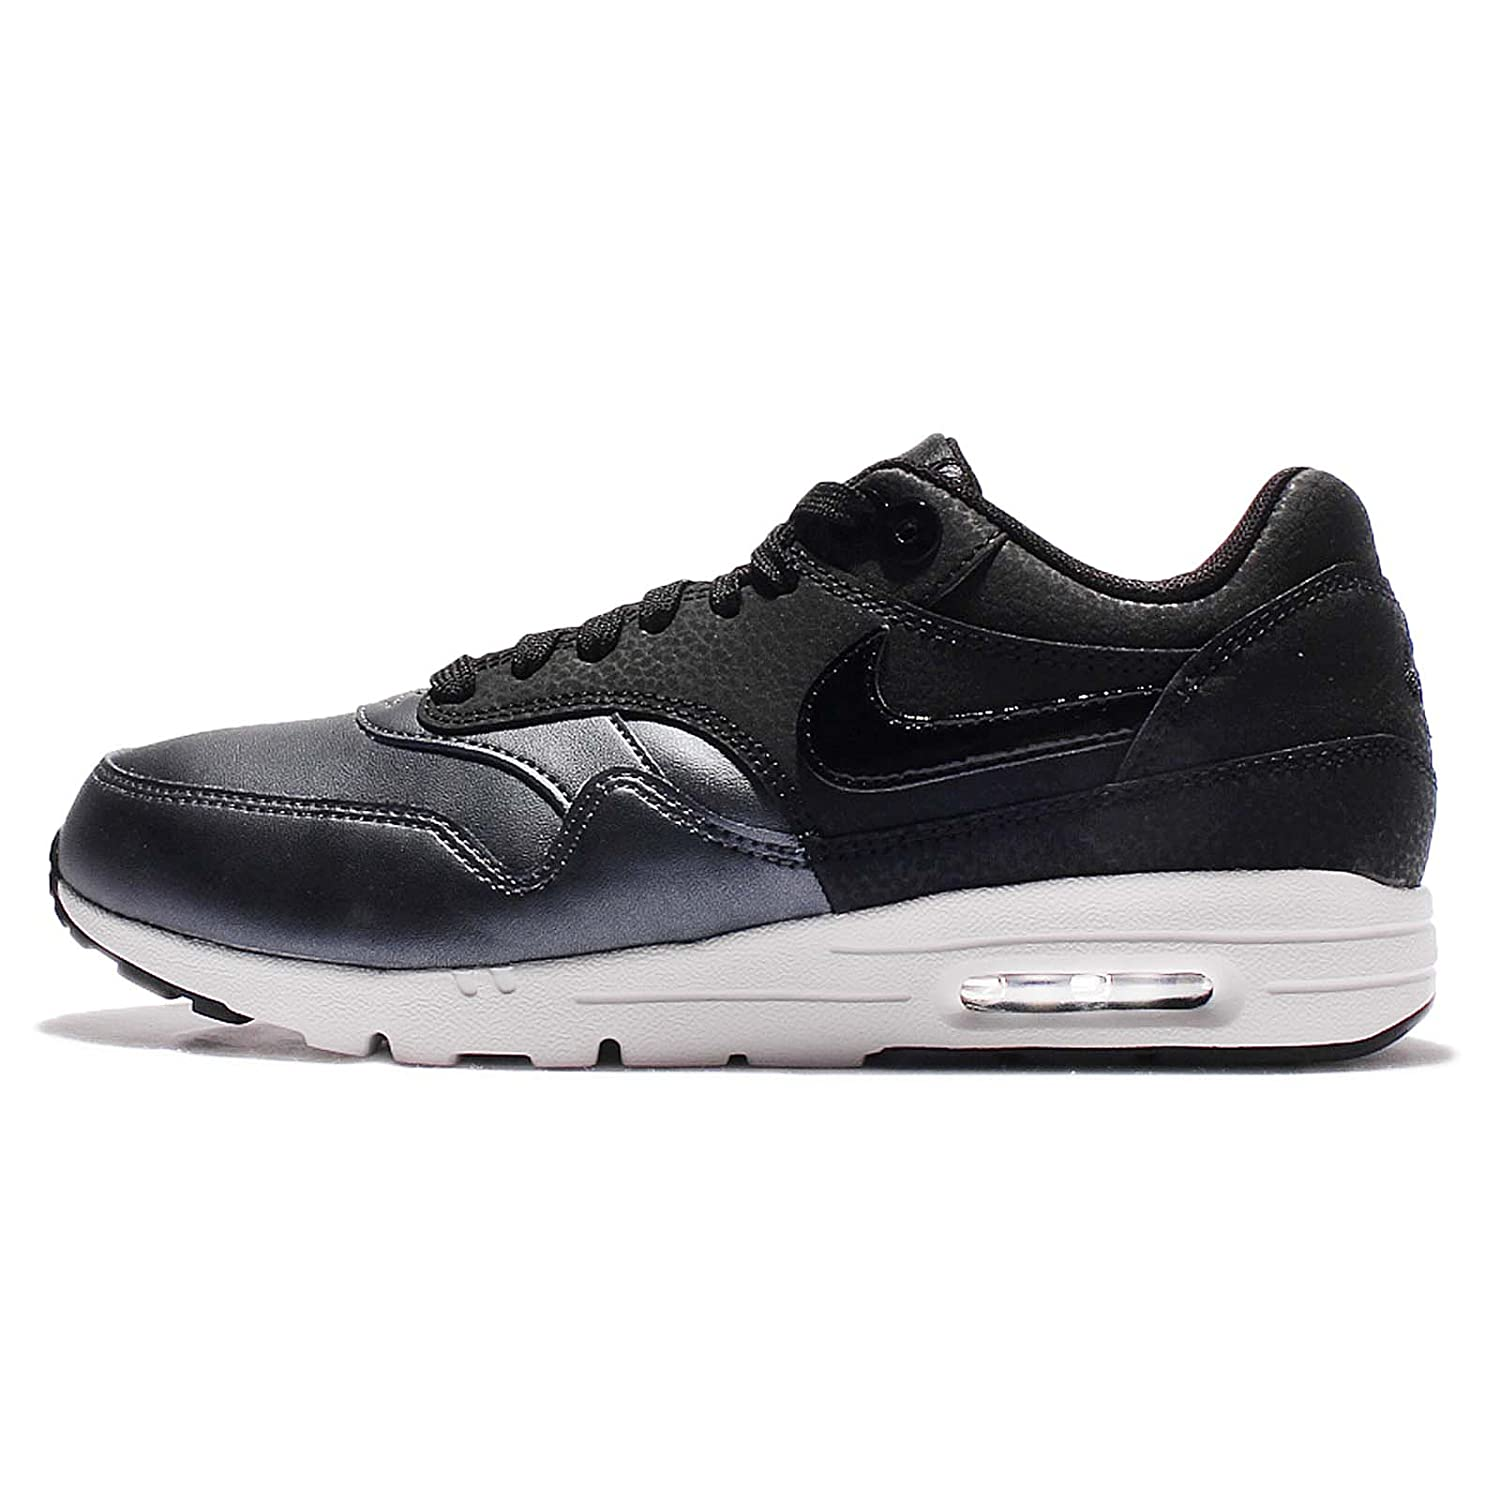 New Arrival Nike Air Max 1 Nike Air Max 1 Ultra Se Premium Black Unisex Shoes Online Store